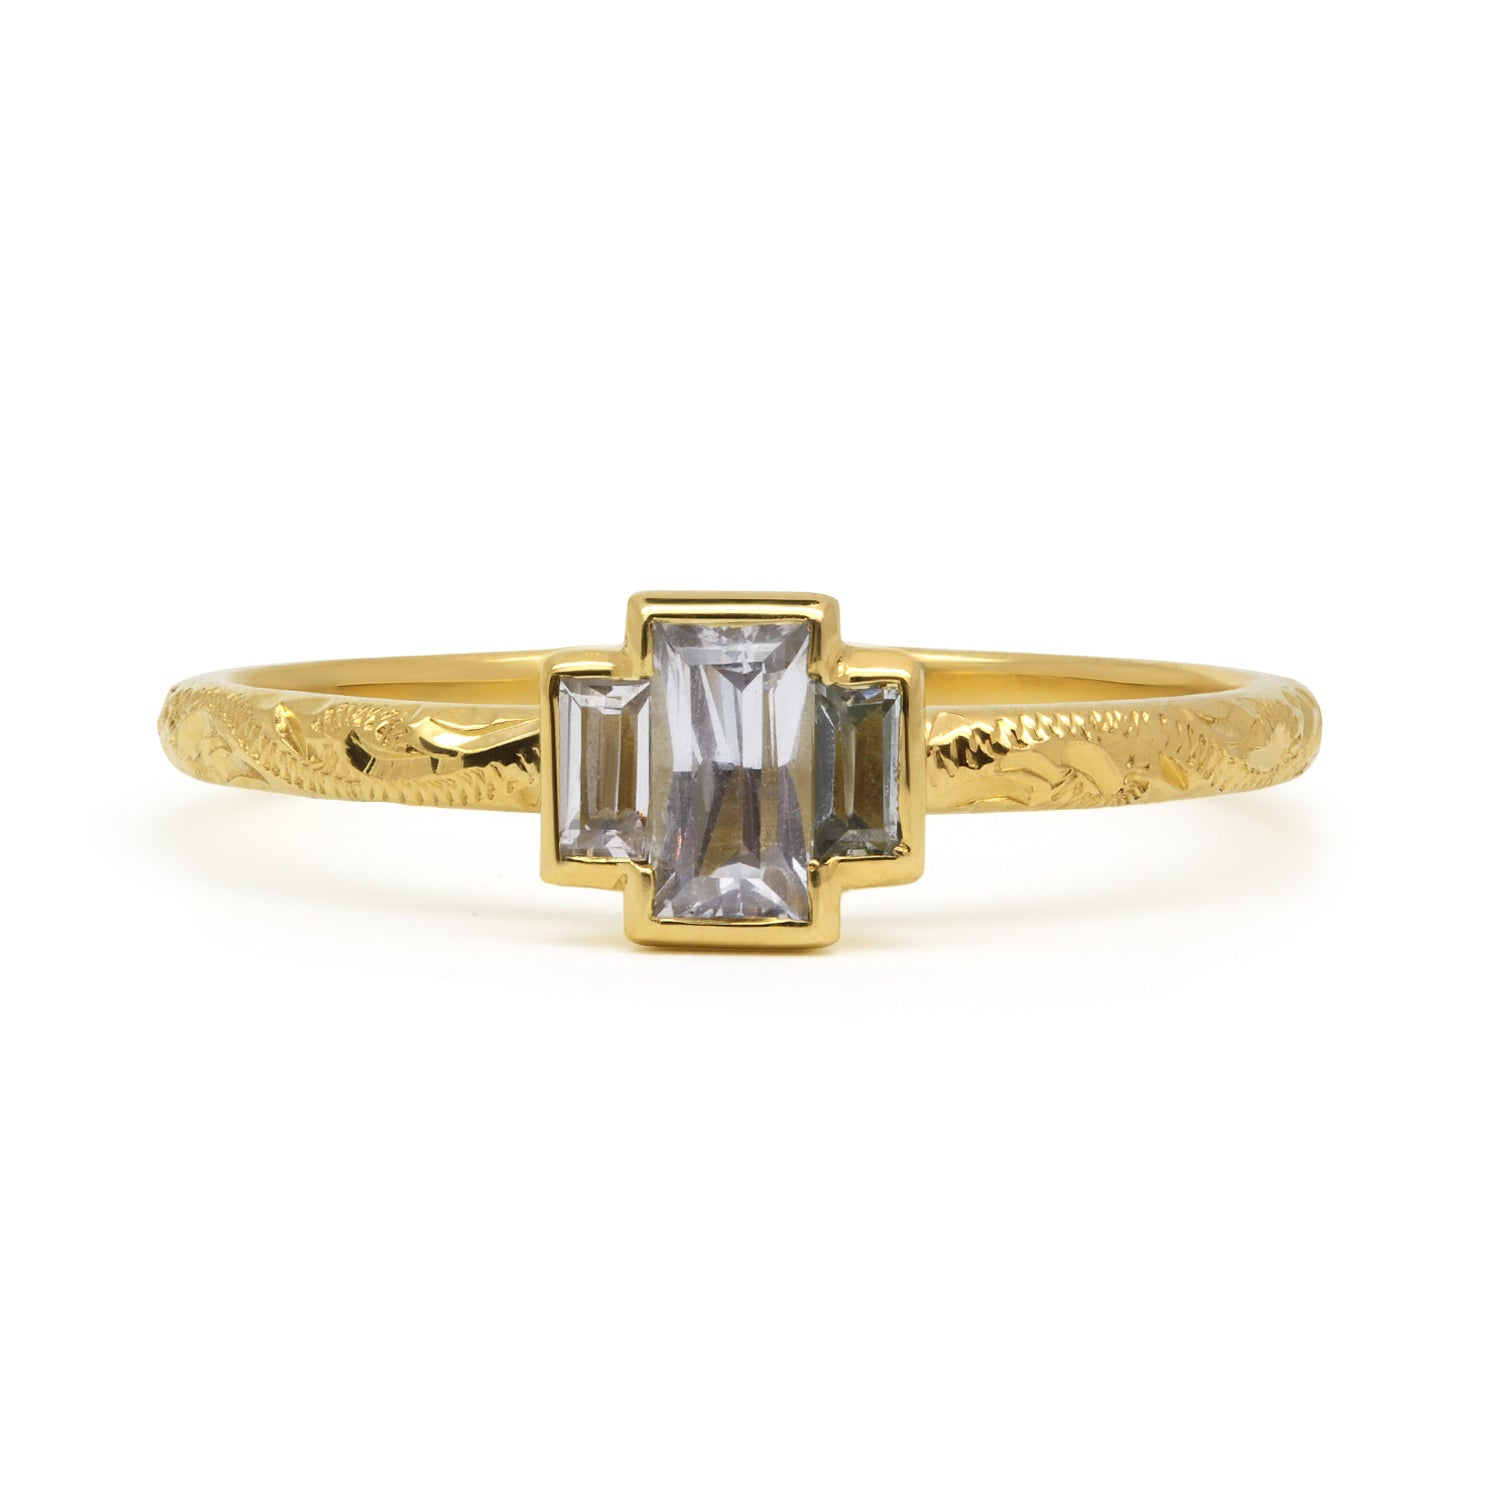 Candy Pop Trilogy Sapphire Engagement Ring, 18ct Ethical Recycled Gold